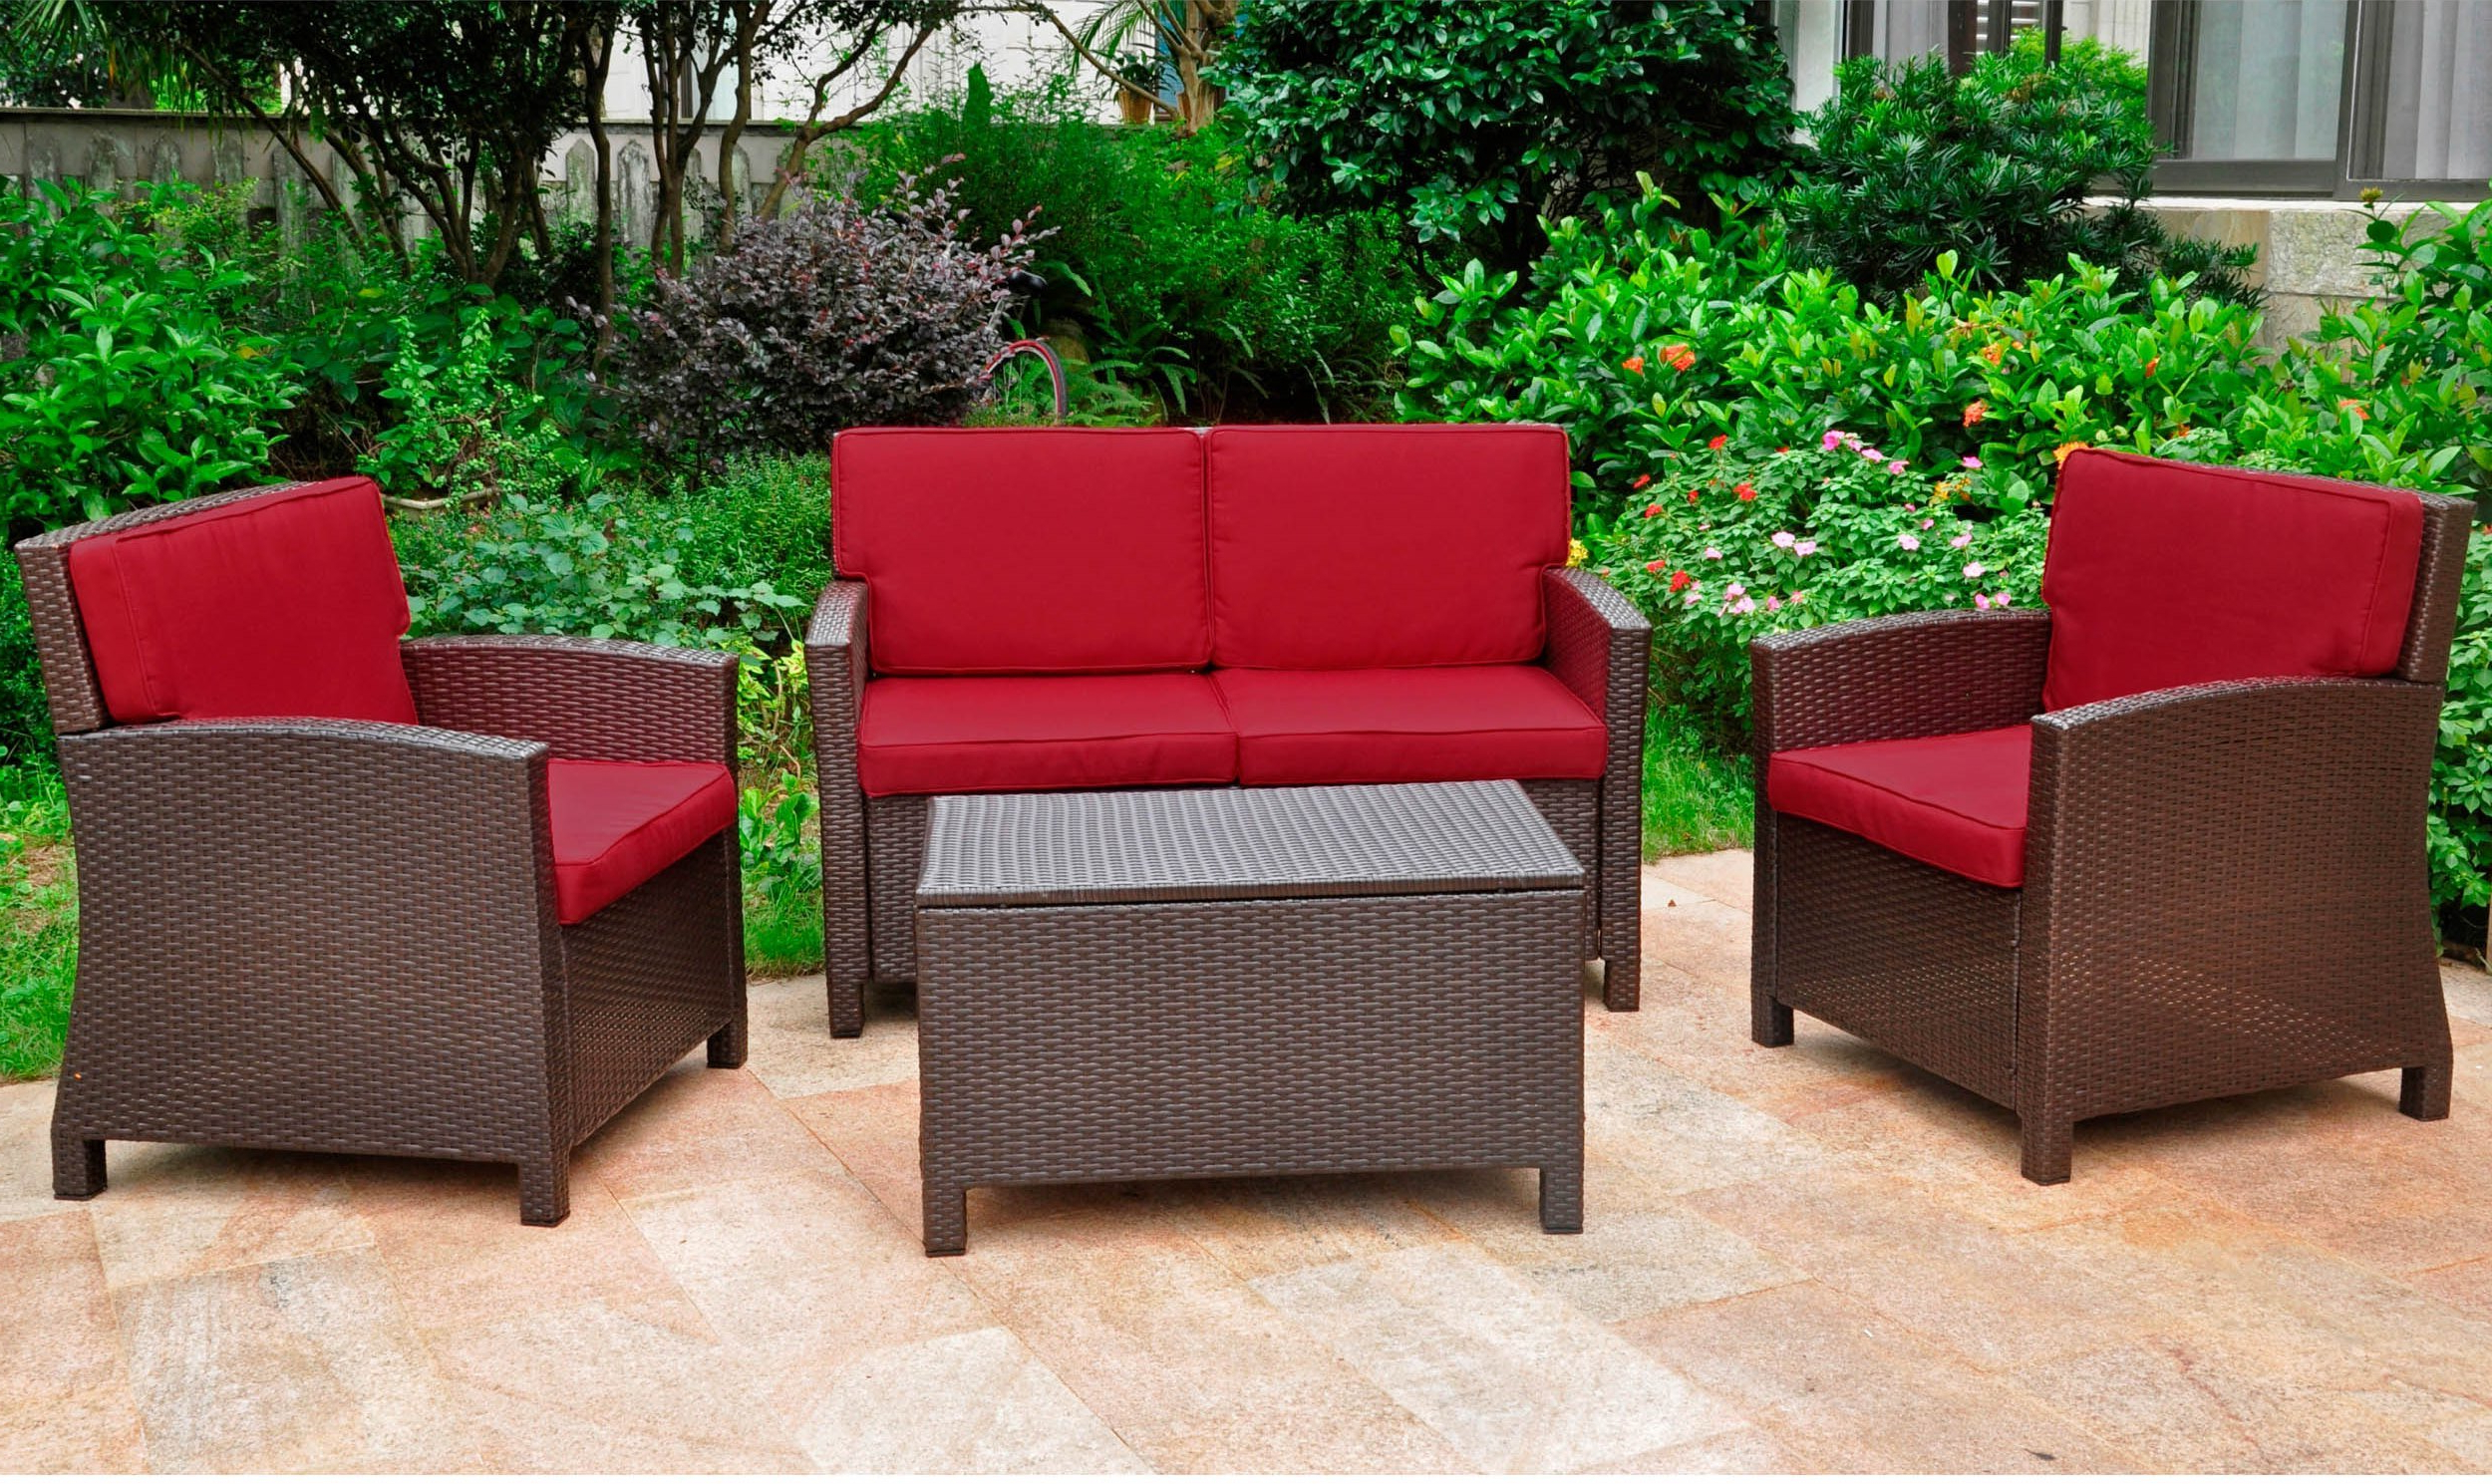 Stapleton Wicker Resin Patio Sofas With Cushions Intended For Most Popular Stapleton 4 Piece Sofa Set With Cushions (View 13 of 20)